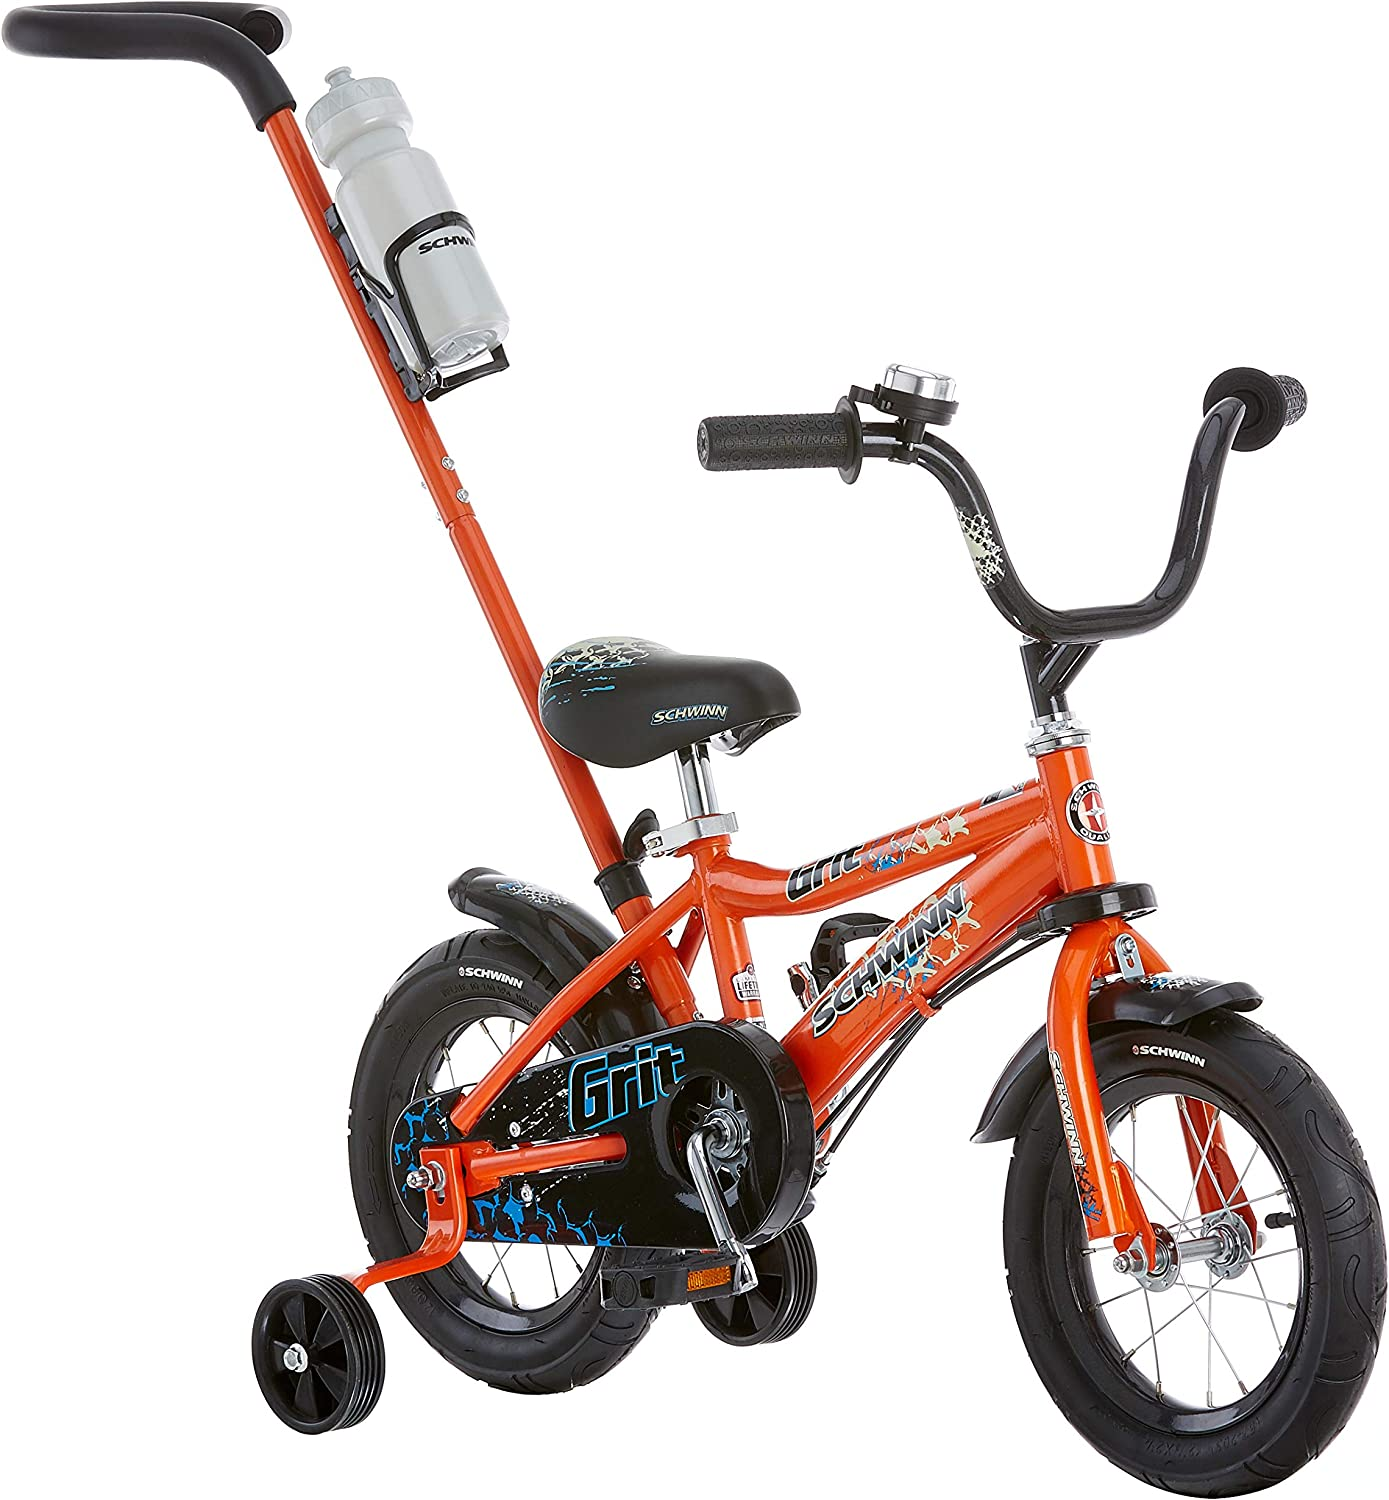 Schwinn Petunia and Grit Steerable Kids Bikes, Featuring Push Handle for Easy Steering, Training Wheels, Enclosed Chain Guard, QuickAdjust Seat, and 12Inch Wheels, in Pink White and orange Black